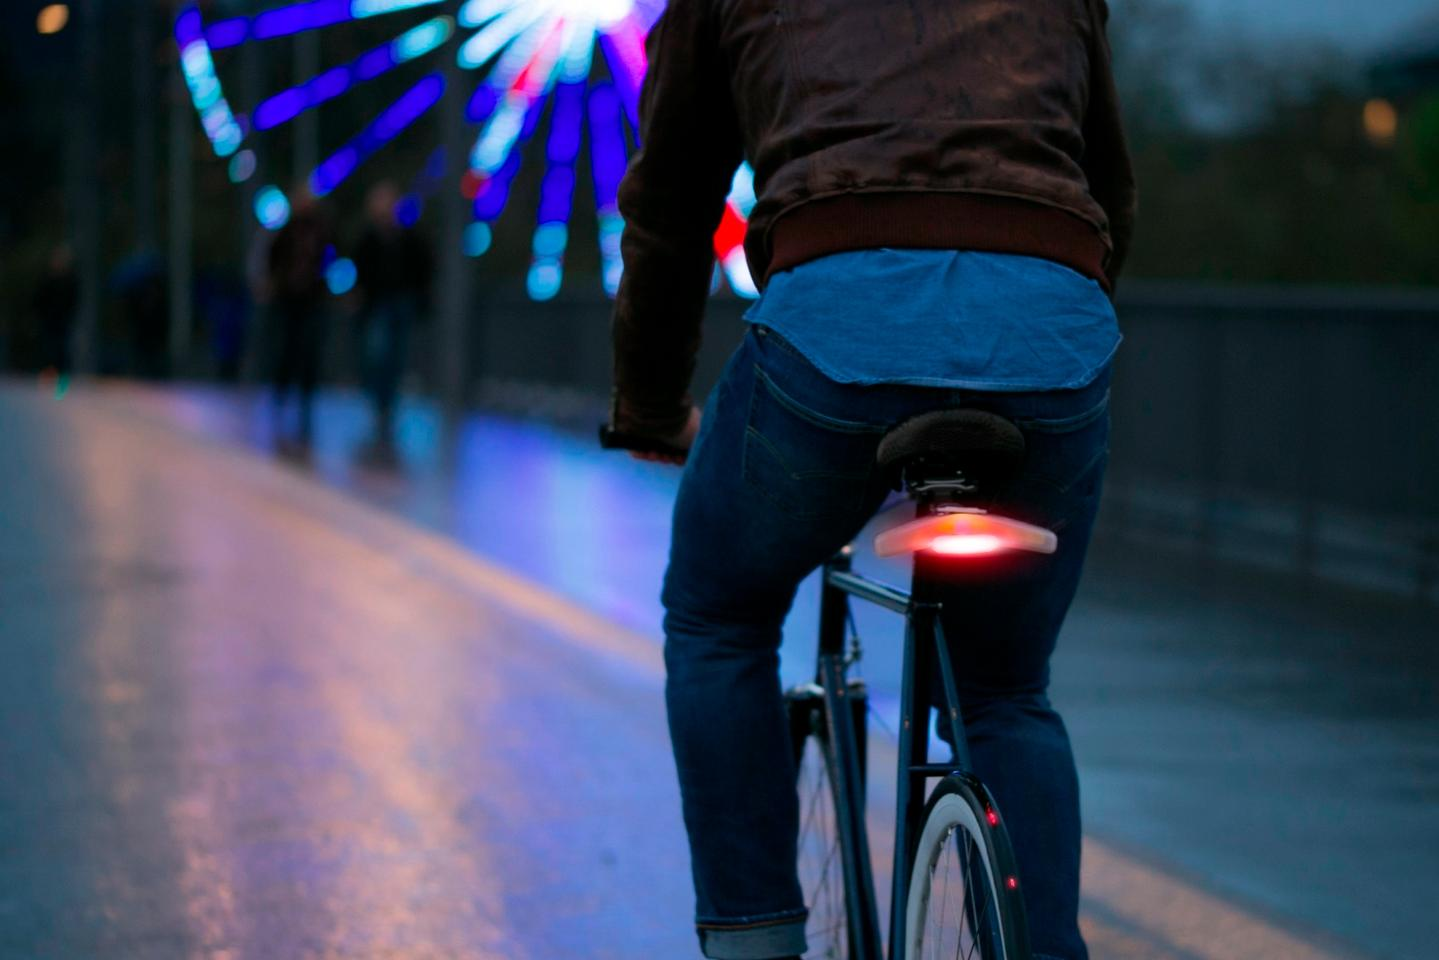 An accelerometer and gyroscope cause Blinkers' brake light to come on automatically when the bike decelerates